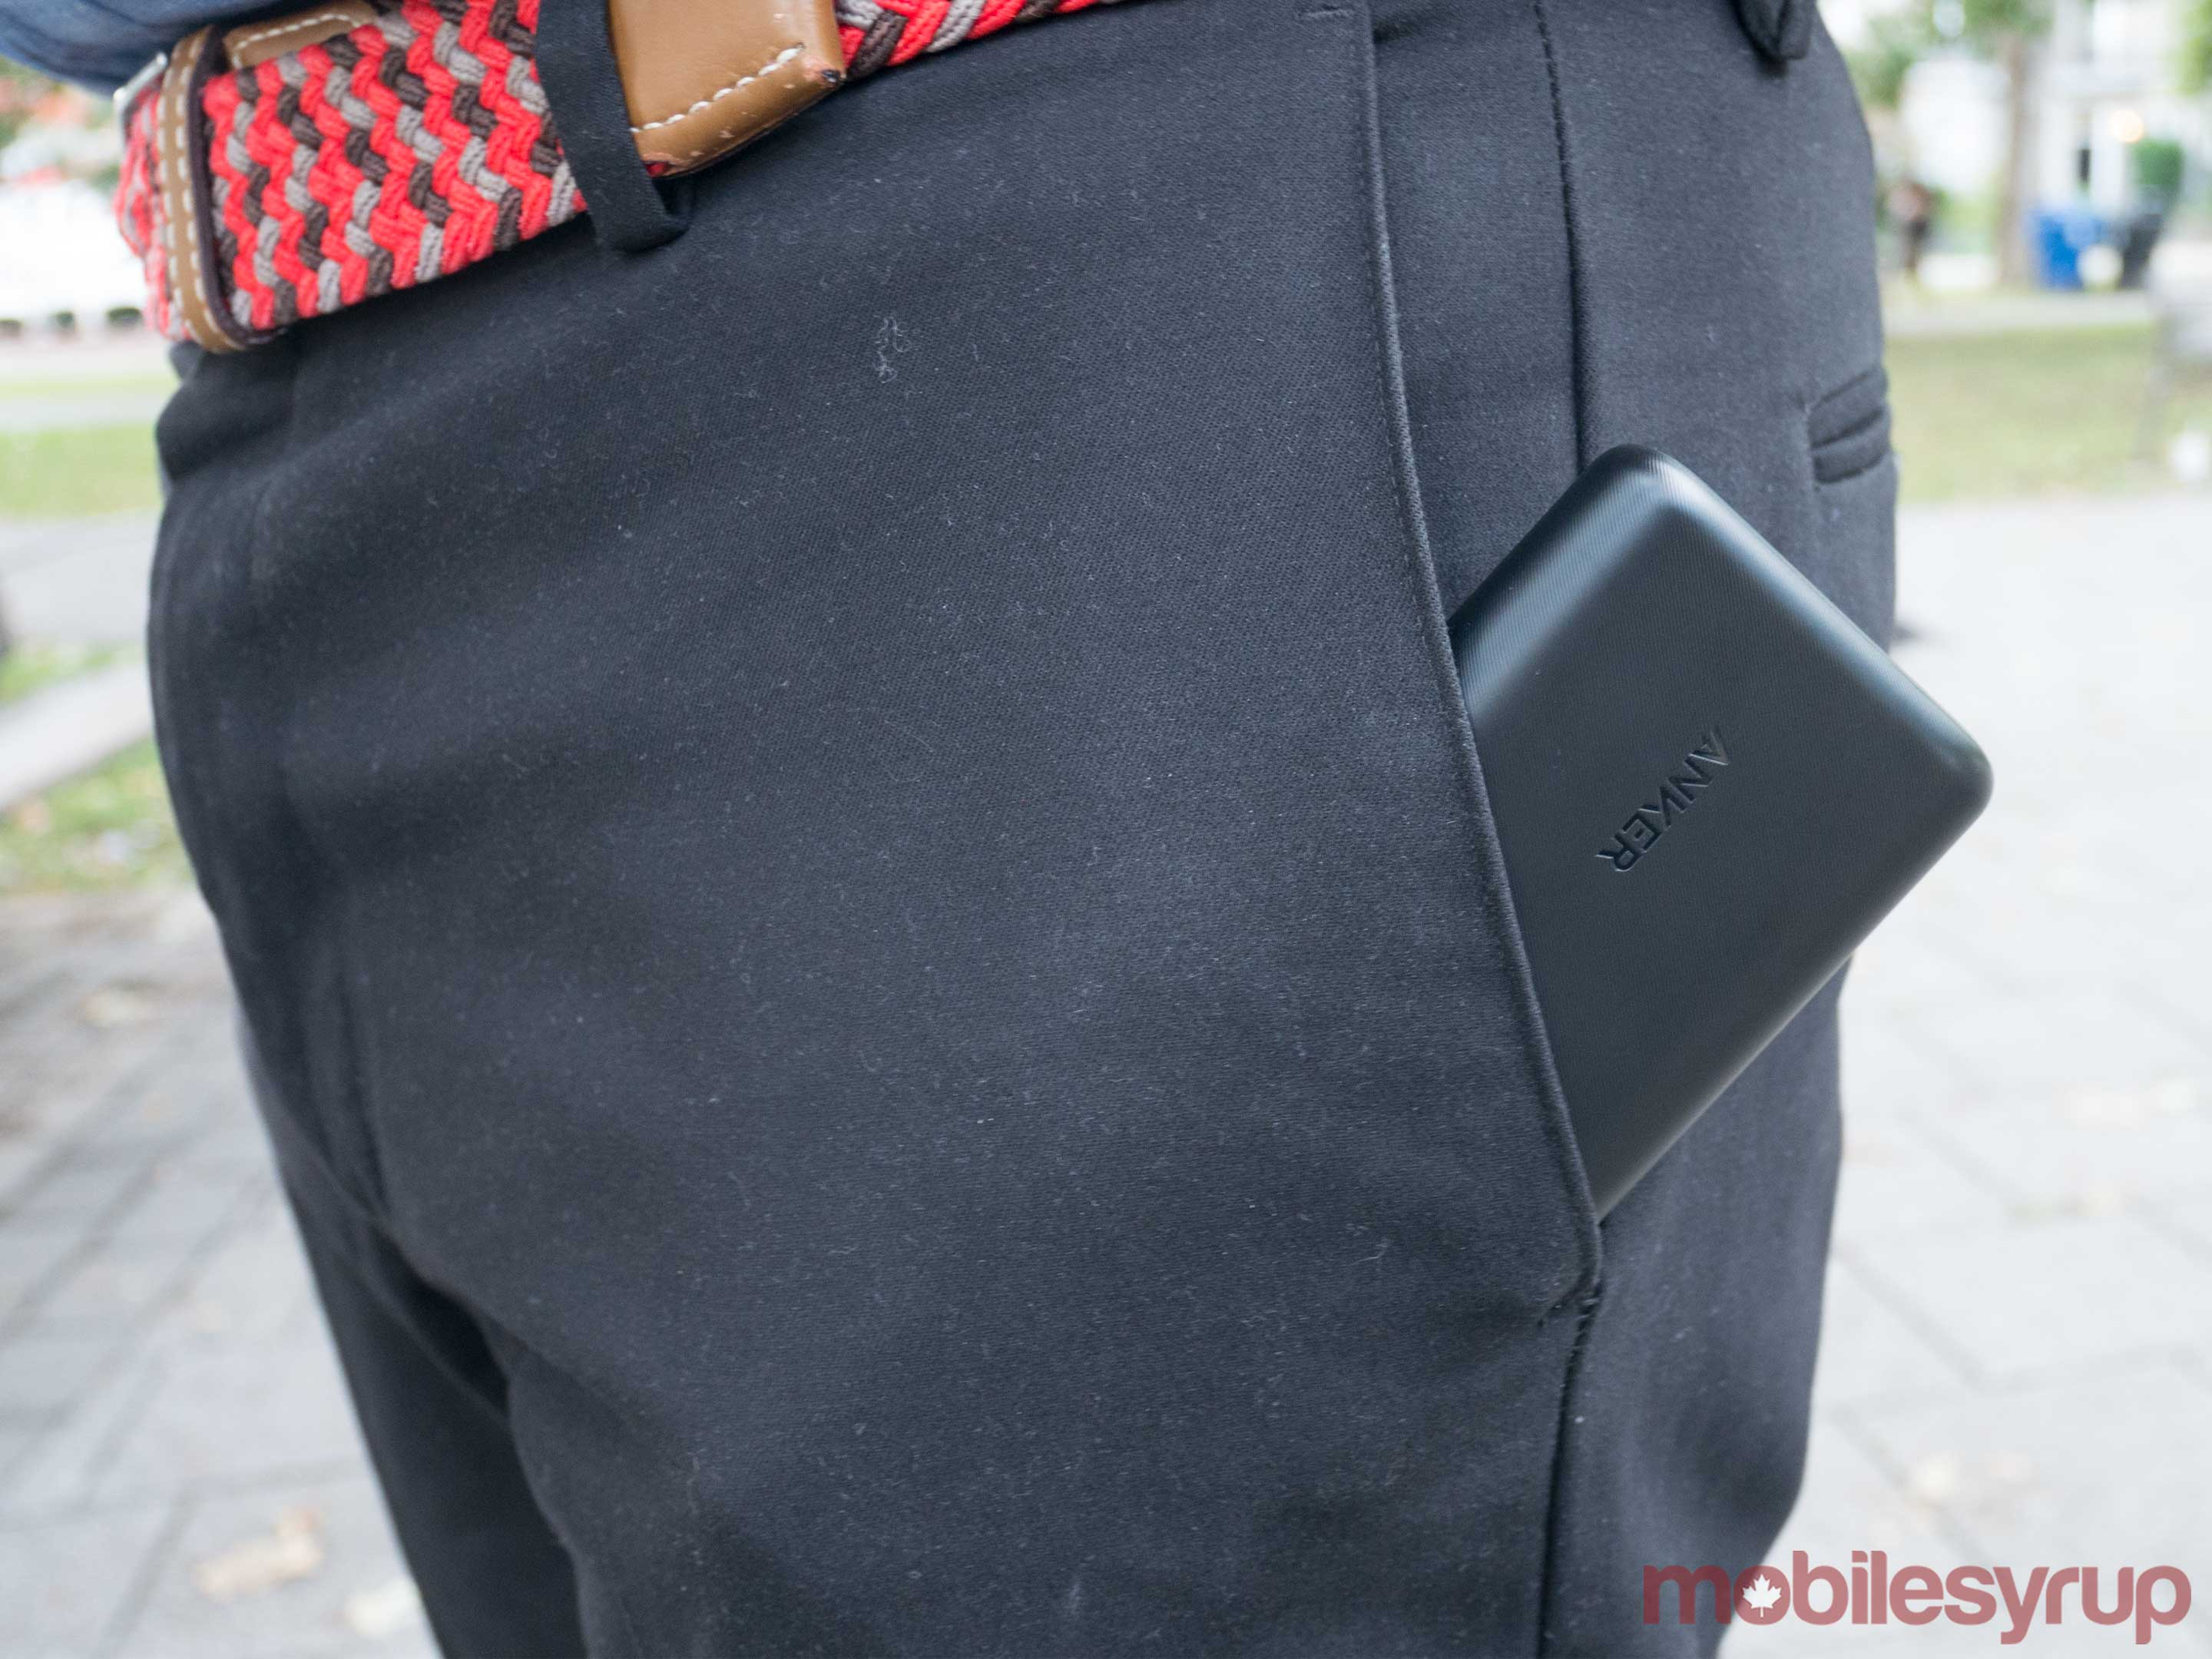 The Anker PowerCore in a pocket